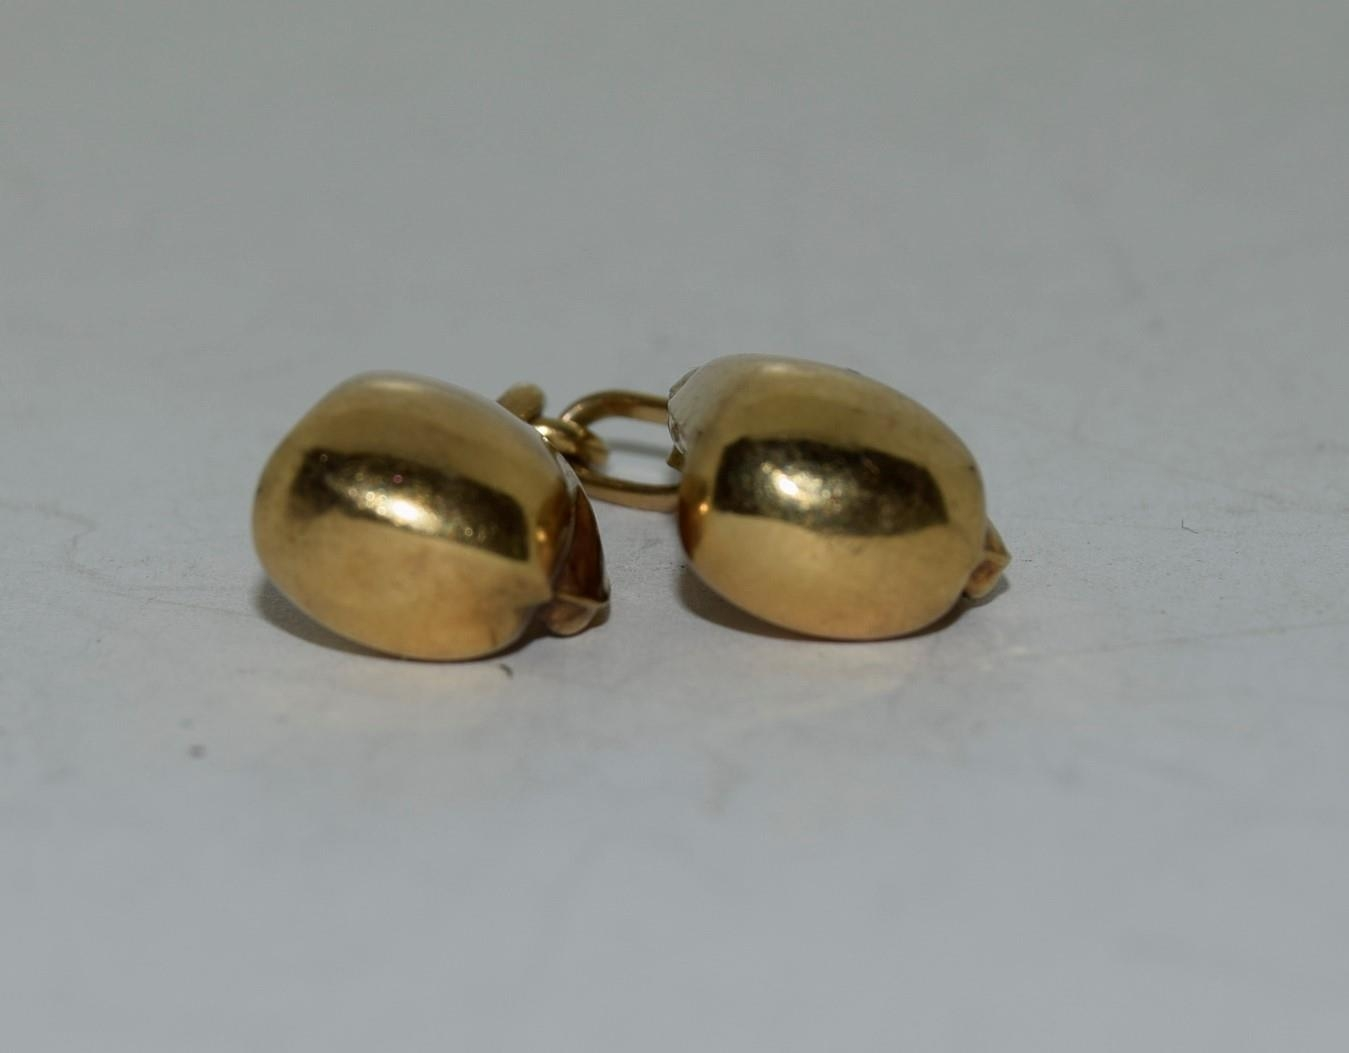 9ct gold charm a pair of boxing gloves - Image 4 of 6